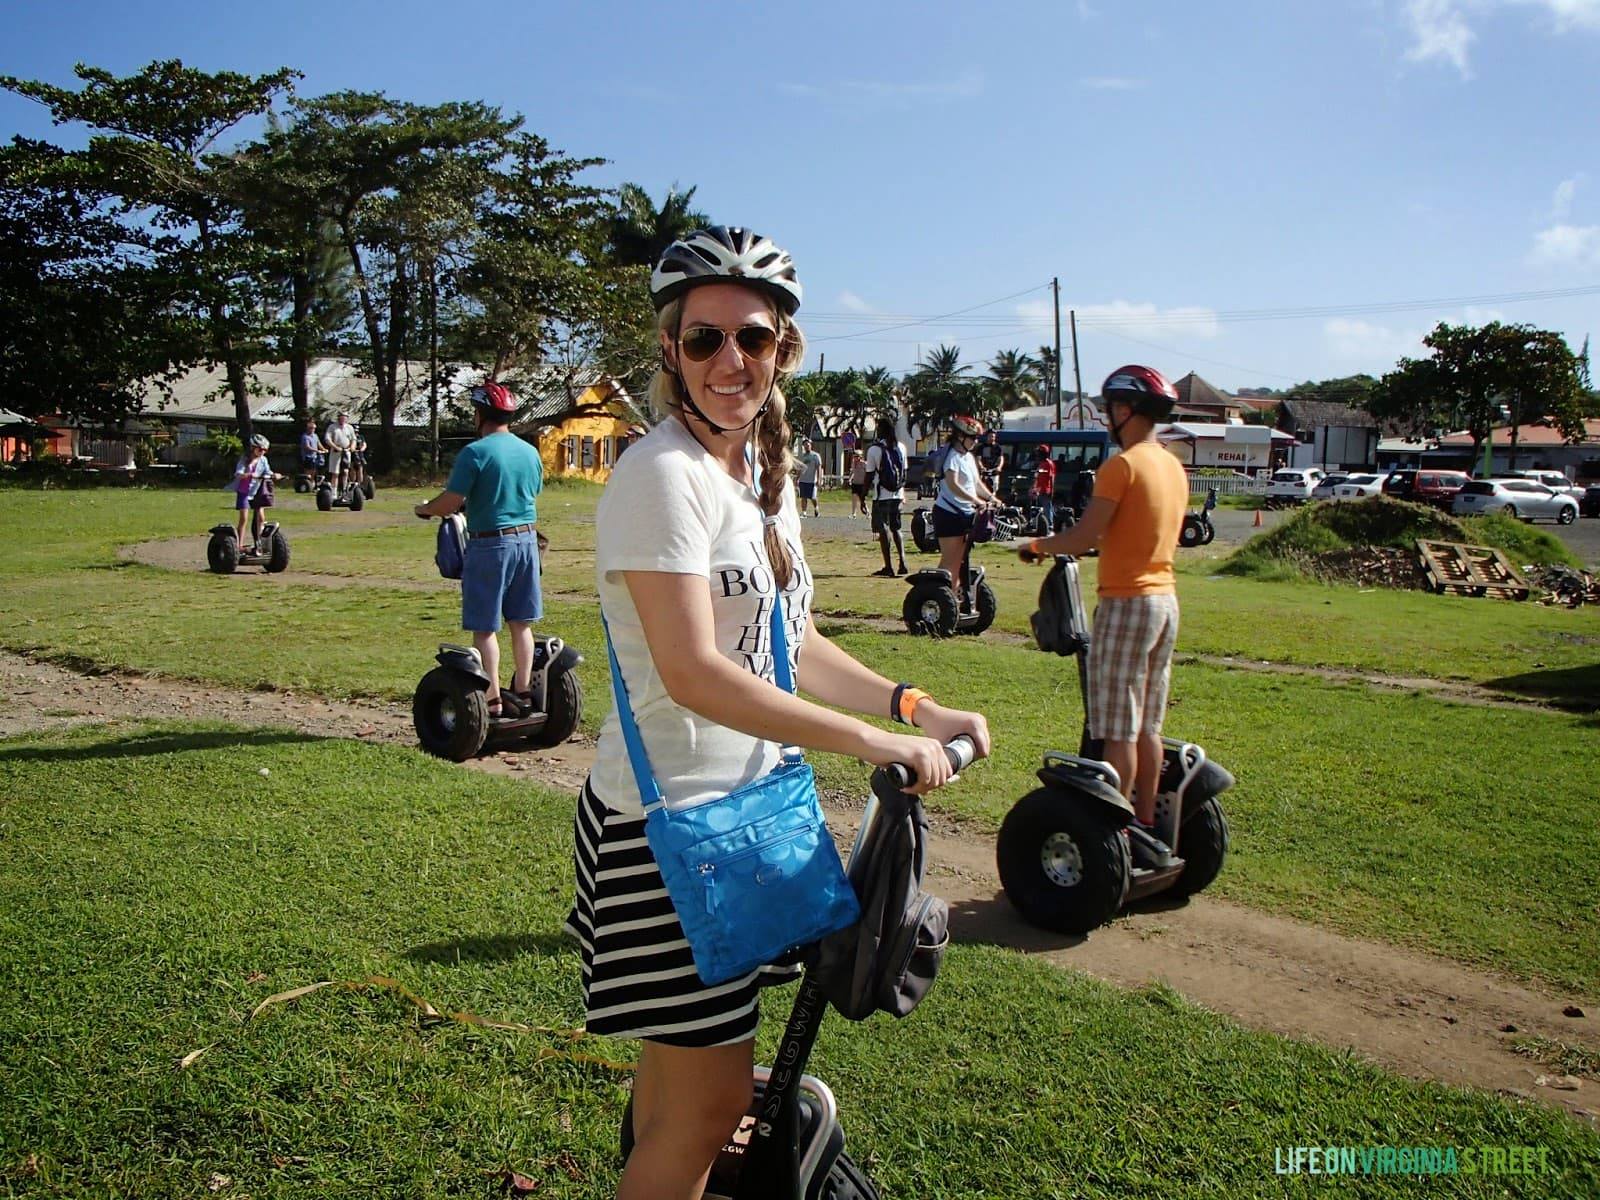 On a segway tour.